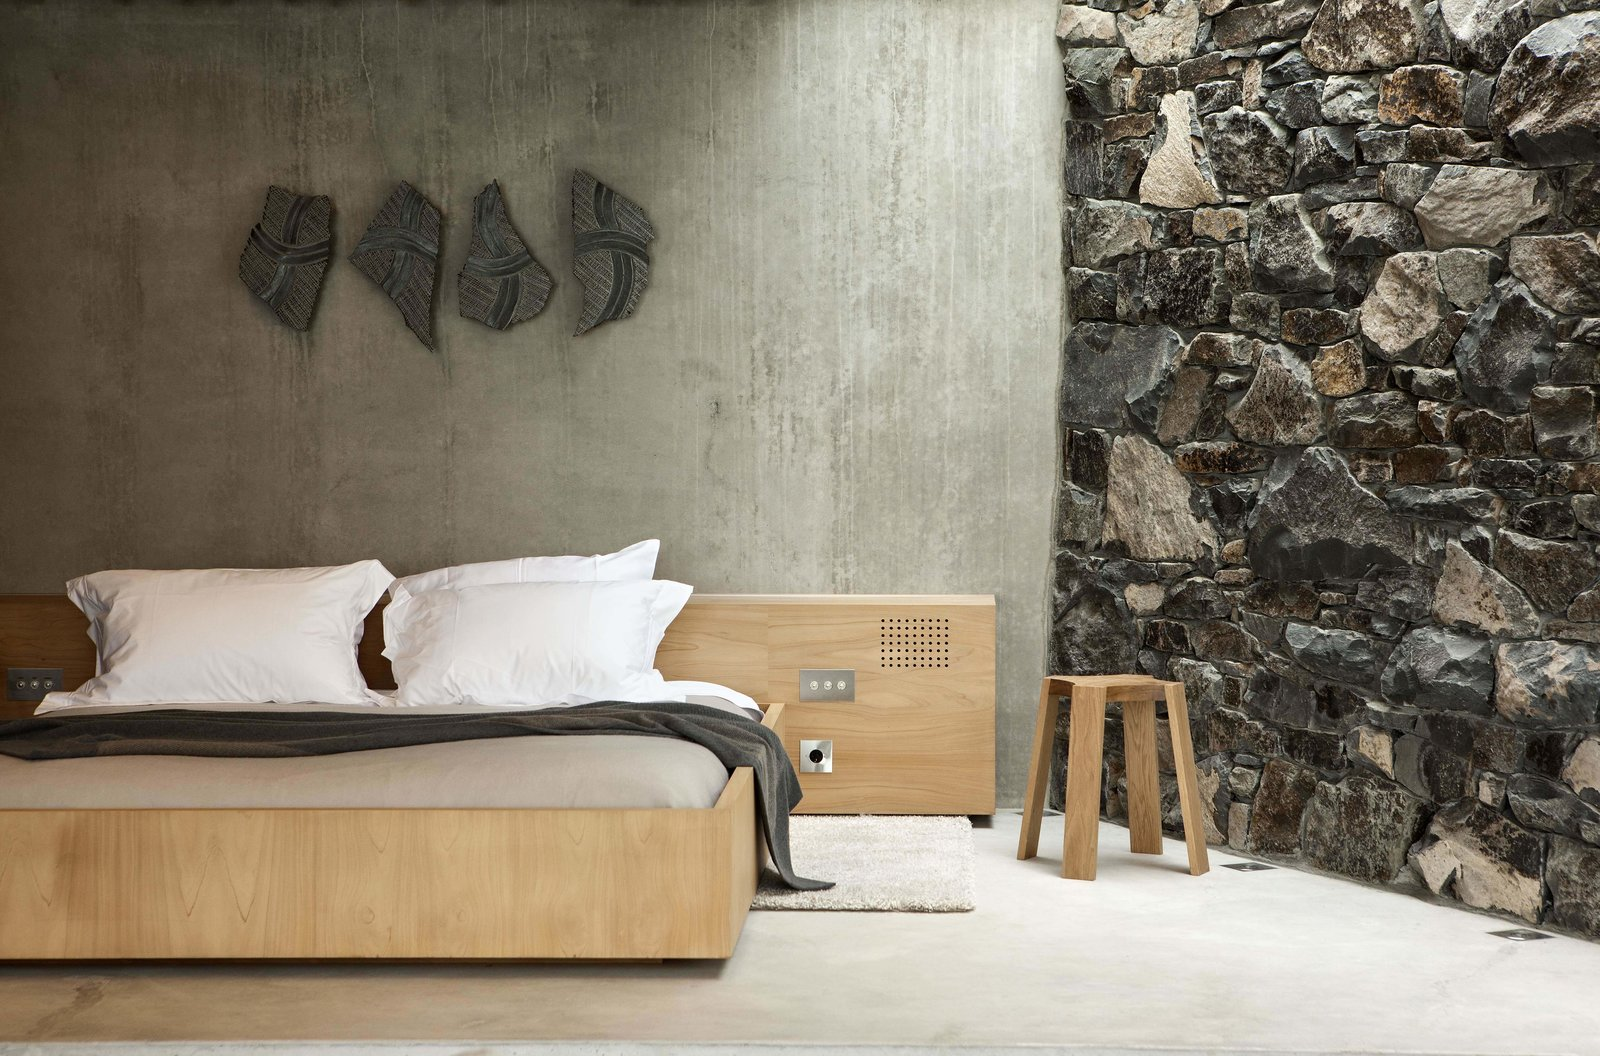 Bedroom, Bed, and Light Hardwood Floor  Photo 5 of 10 in Stay at a Stone-and-Glass Retreat in a Remote New Zealand Bay